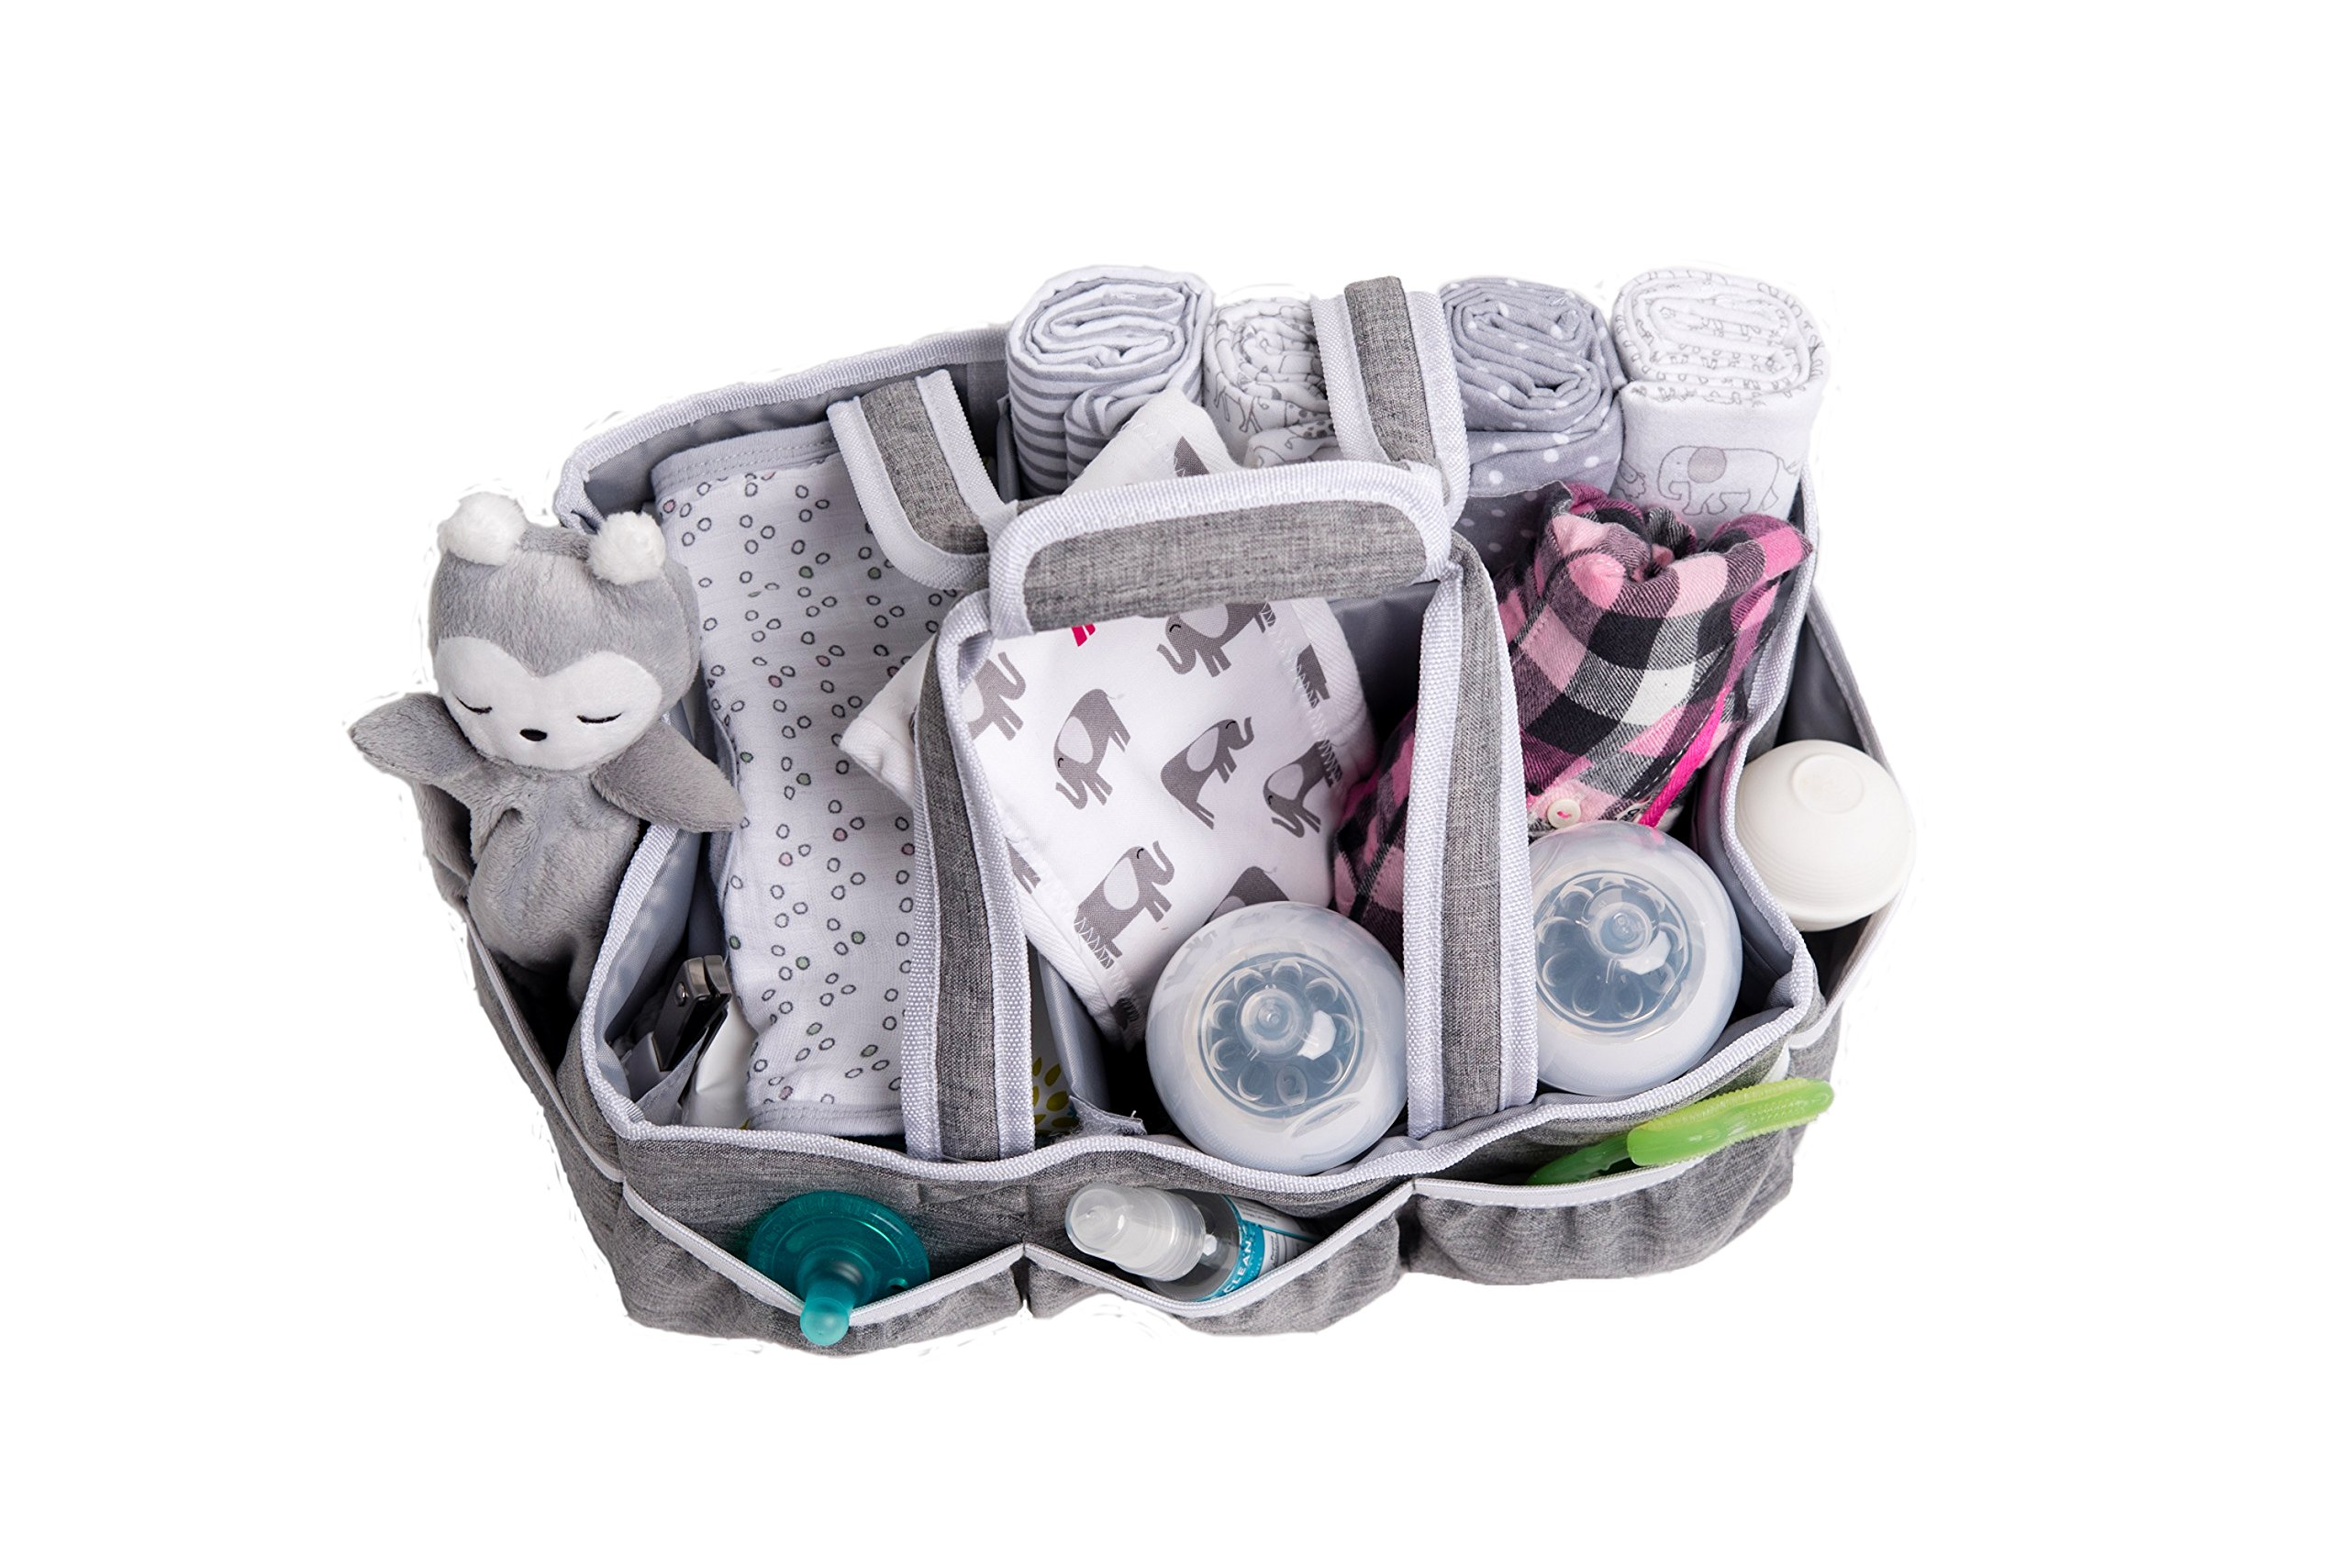 Wallaby Diaper Caddy Storage Bin - Organizer for Diapers, Wipes, Baby Bottles and More. Great for Home, Car, Travel or a Baby Shower Gift. by Bed Buddy (Image #3)